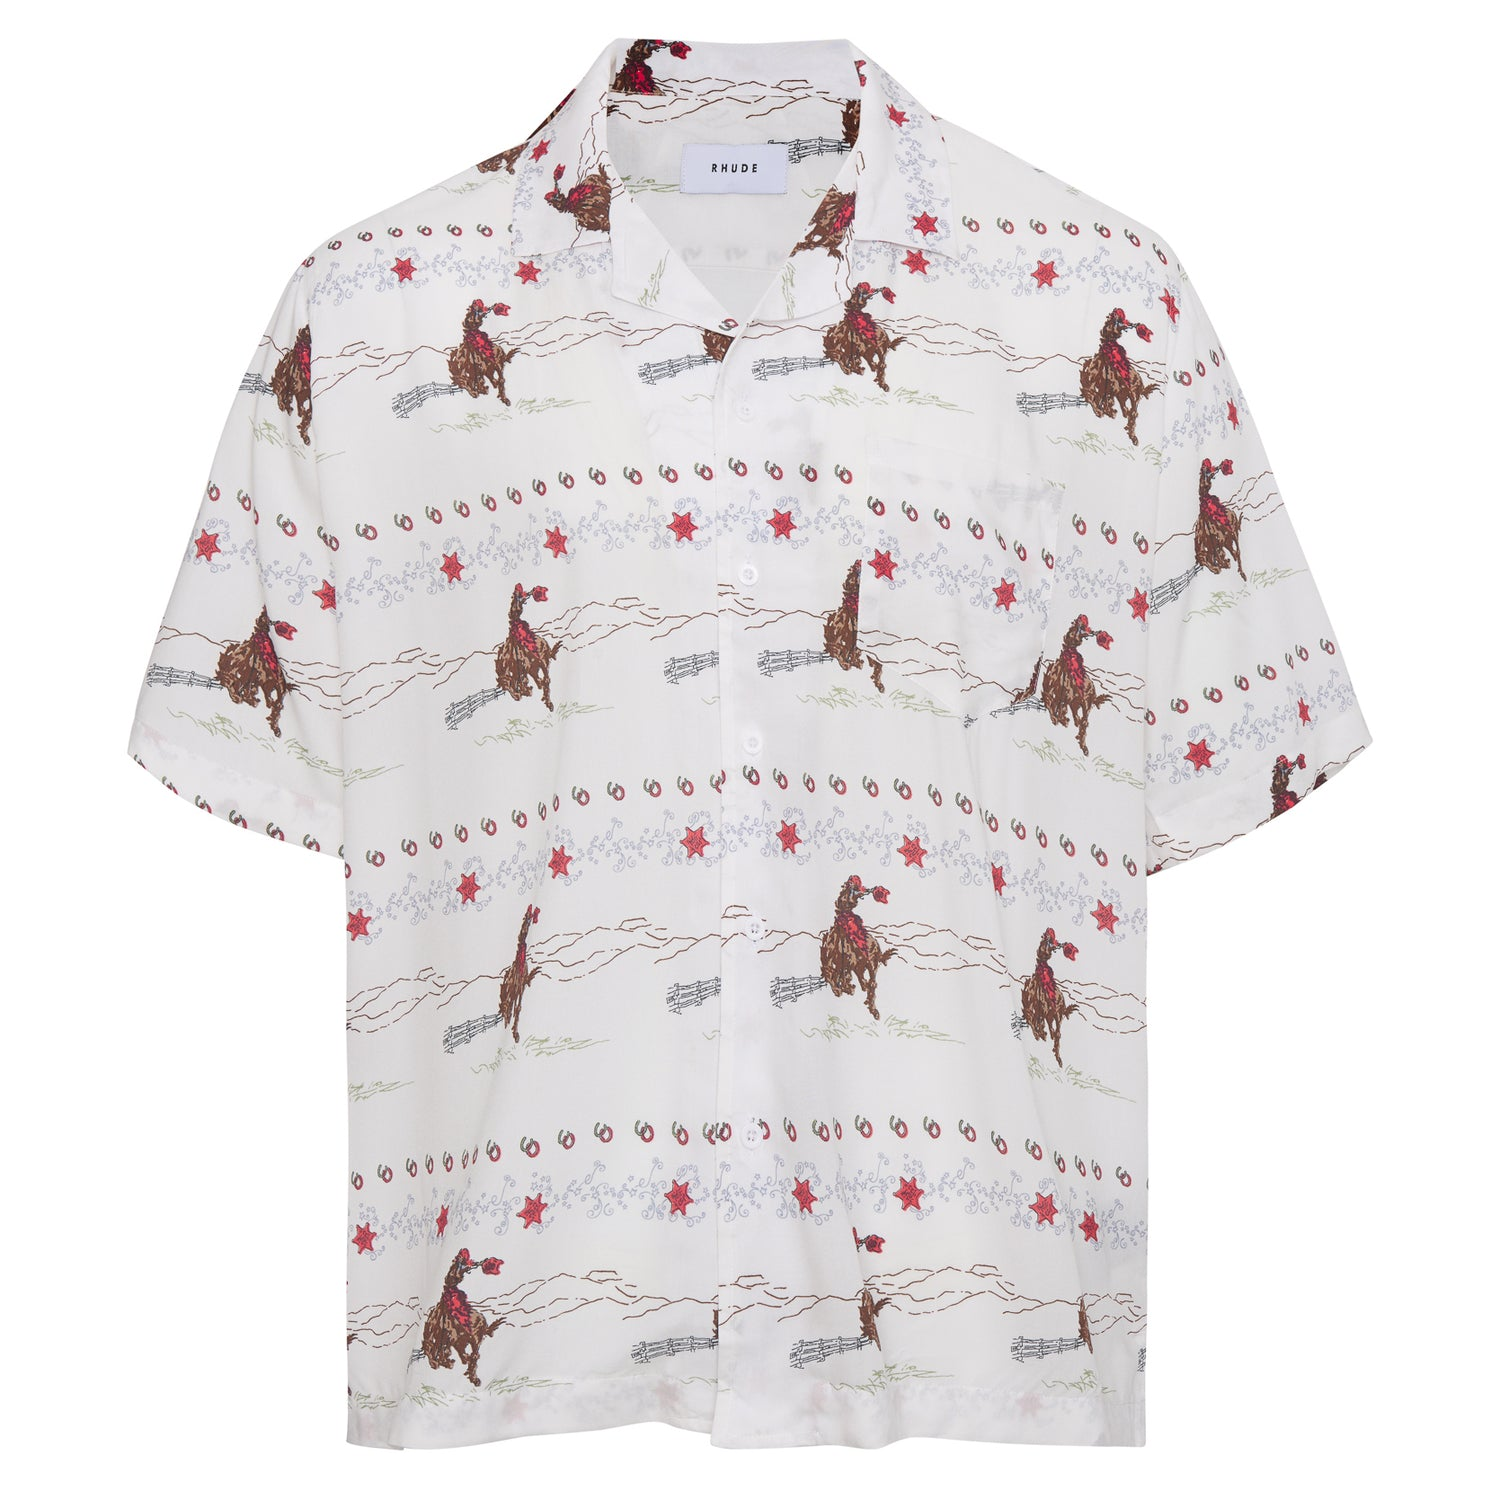 COWBOY HAWAIIAN SHIRT